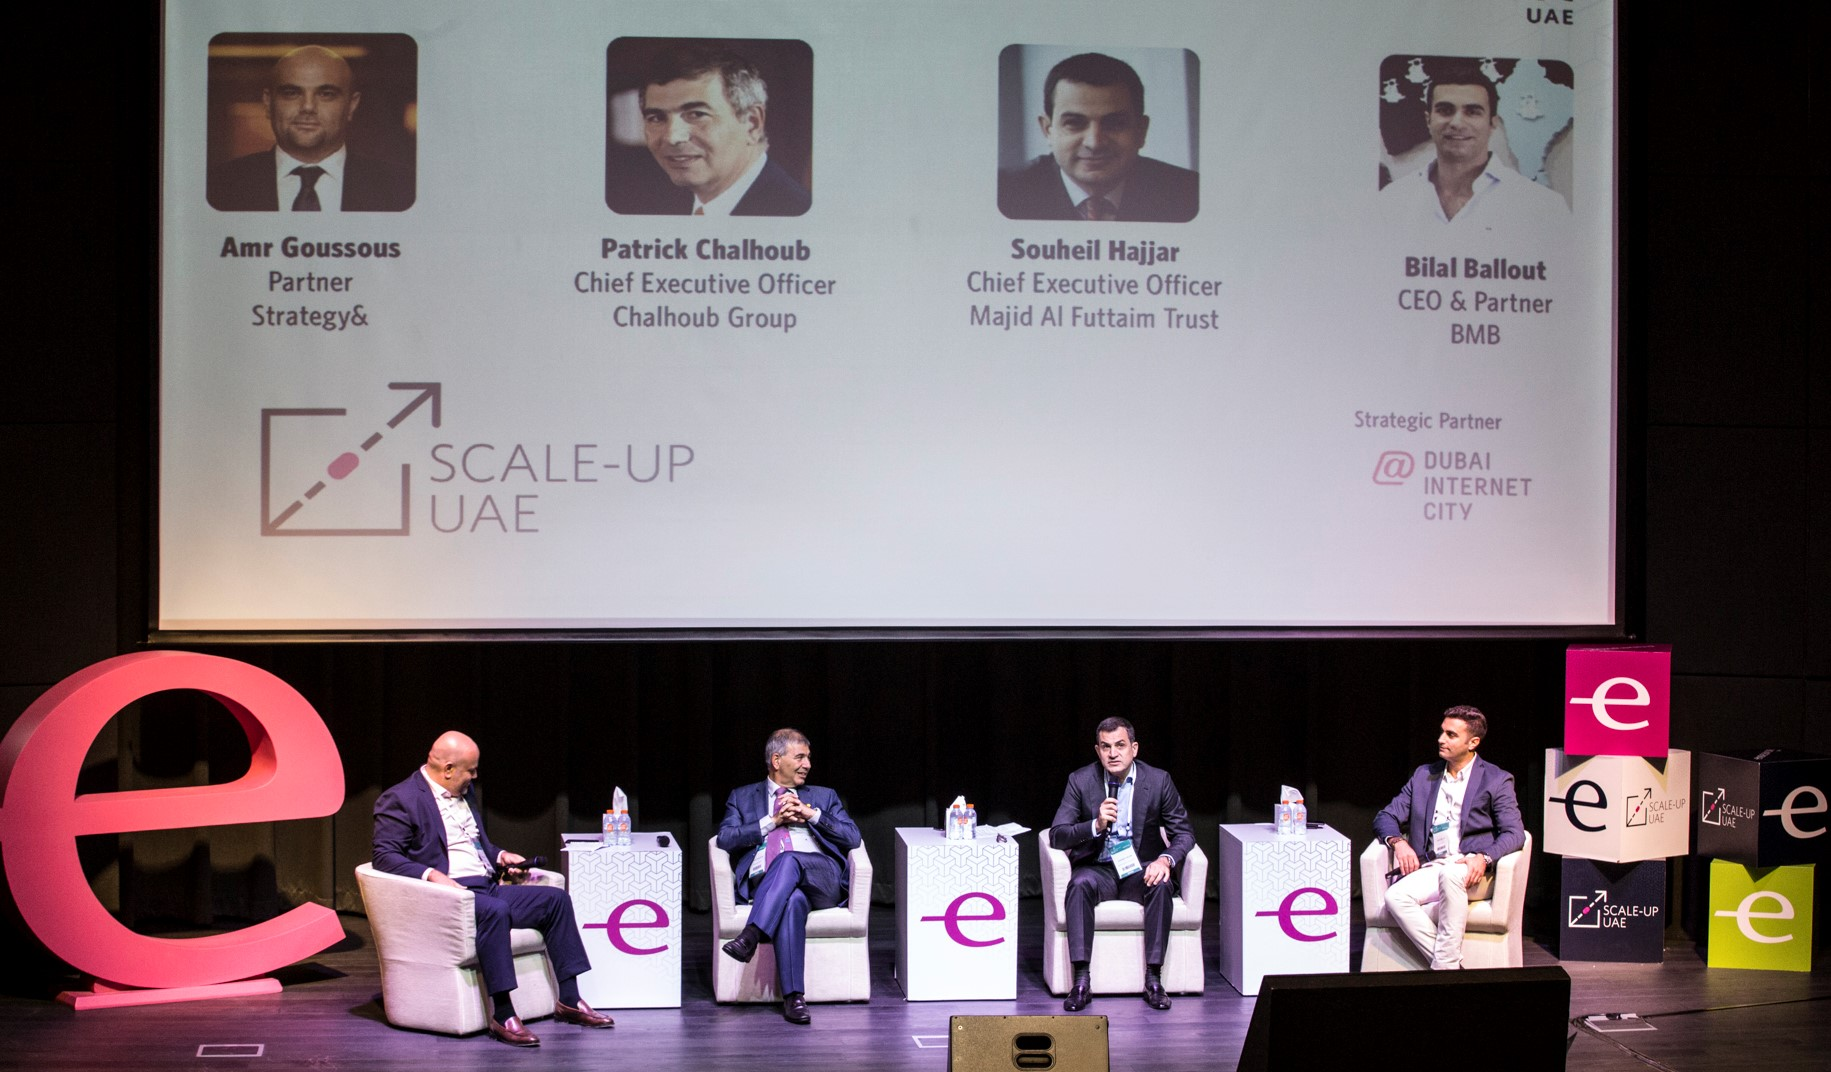 Entrepreneurs and experts attend a panel discussion at the Scale-Up UAE event in Dubai. (Scale-Up UAE)